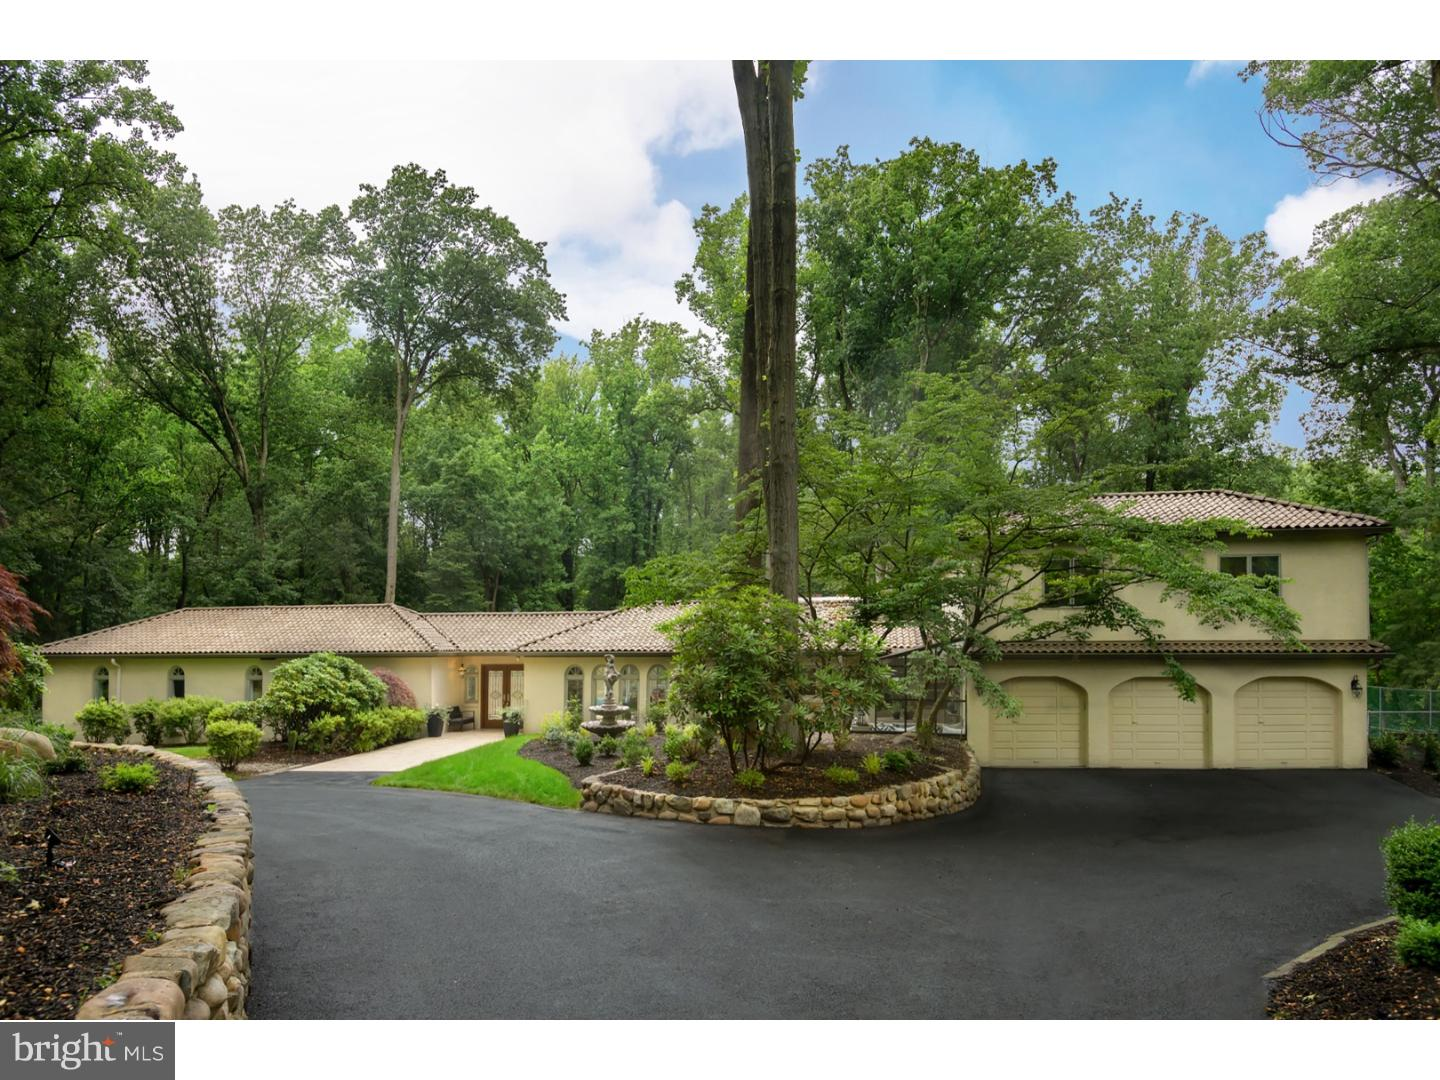 1121 WINDING DRIVE, CHERRY HILL, NJ 08003